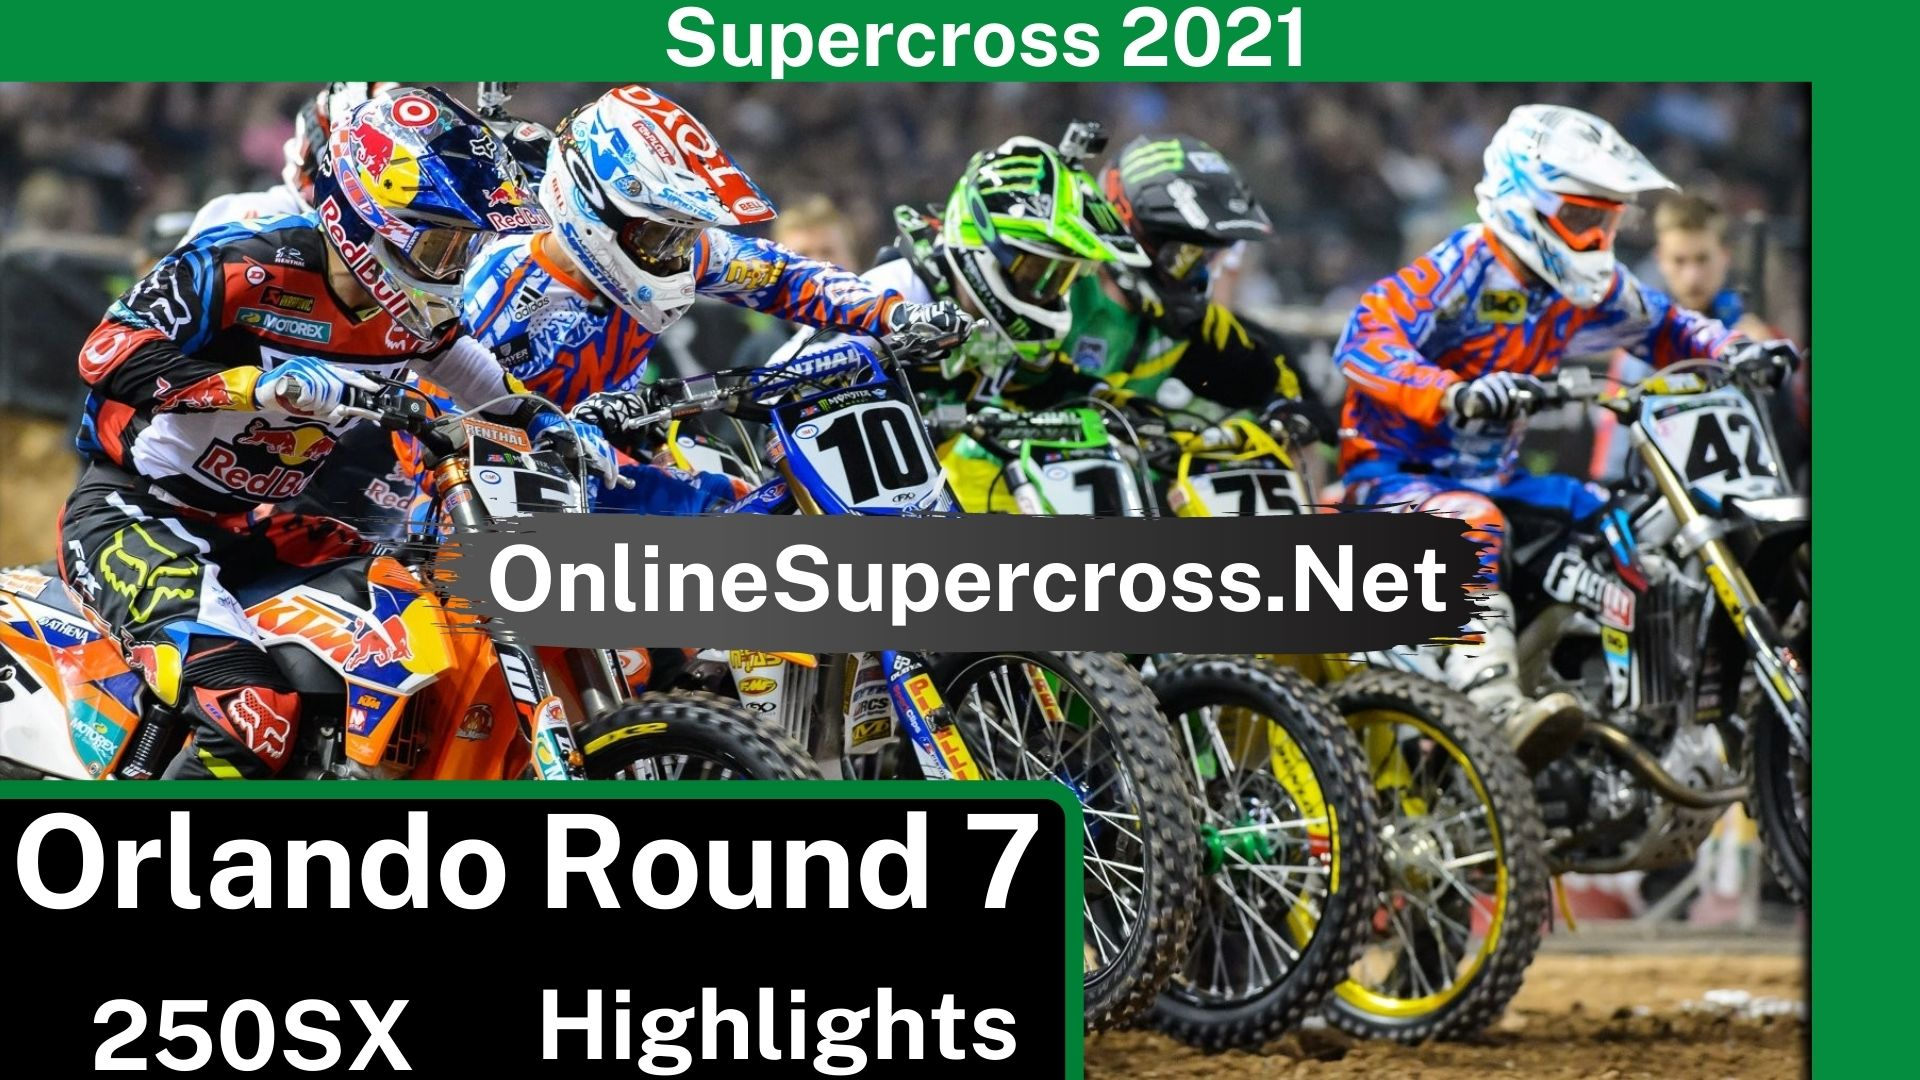 Orlando Round 7 Supercross 250SX Highlights 2021